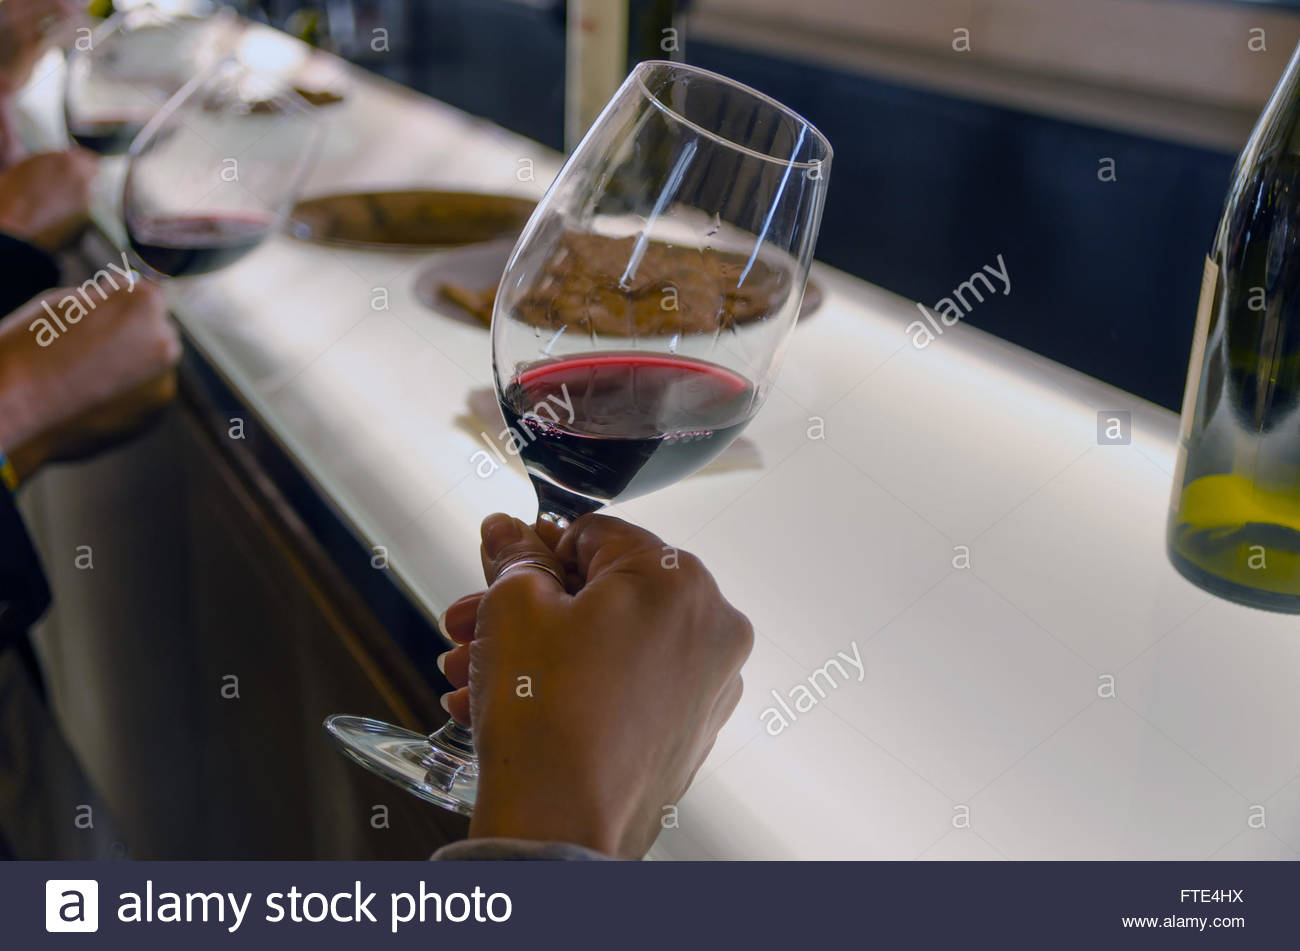 Some people are holding red wine cups in a wine tasting to see the wine transparency - Stock Image